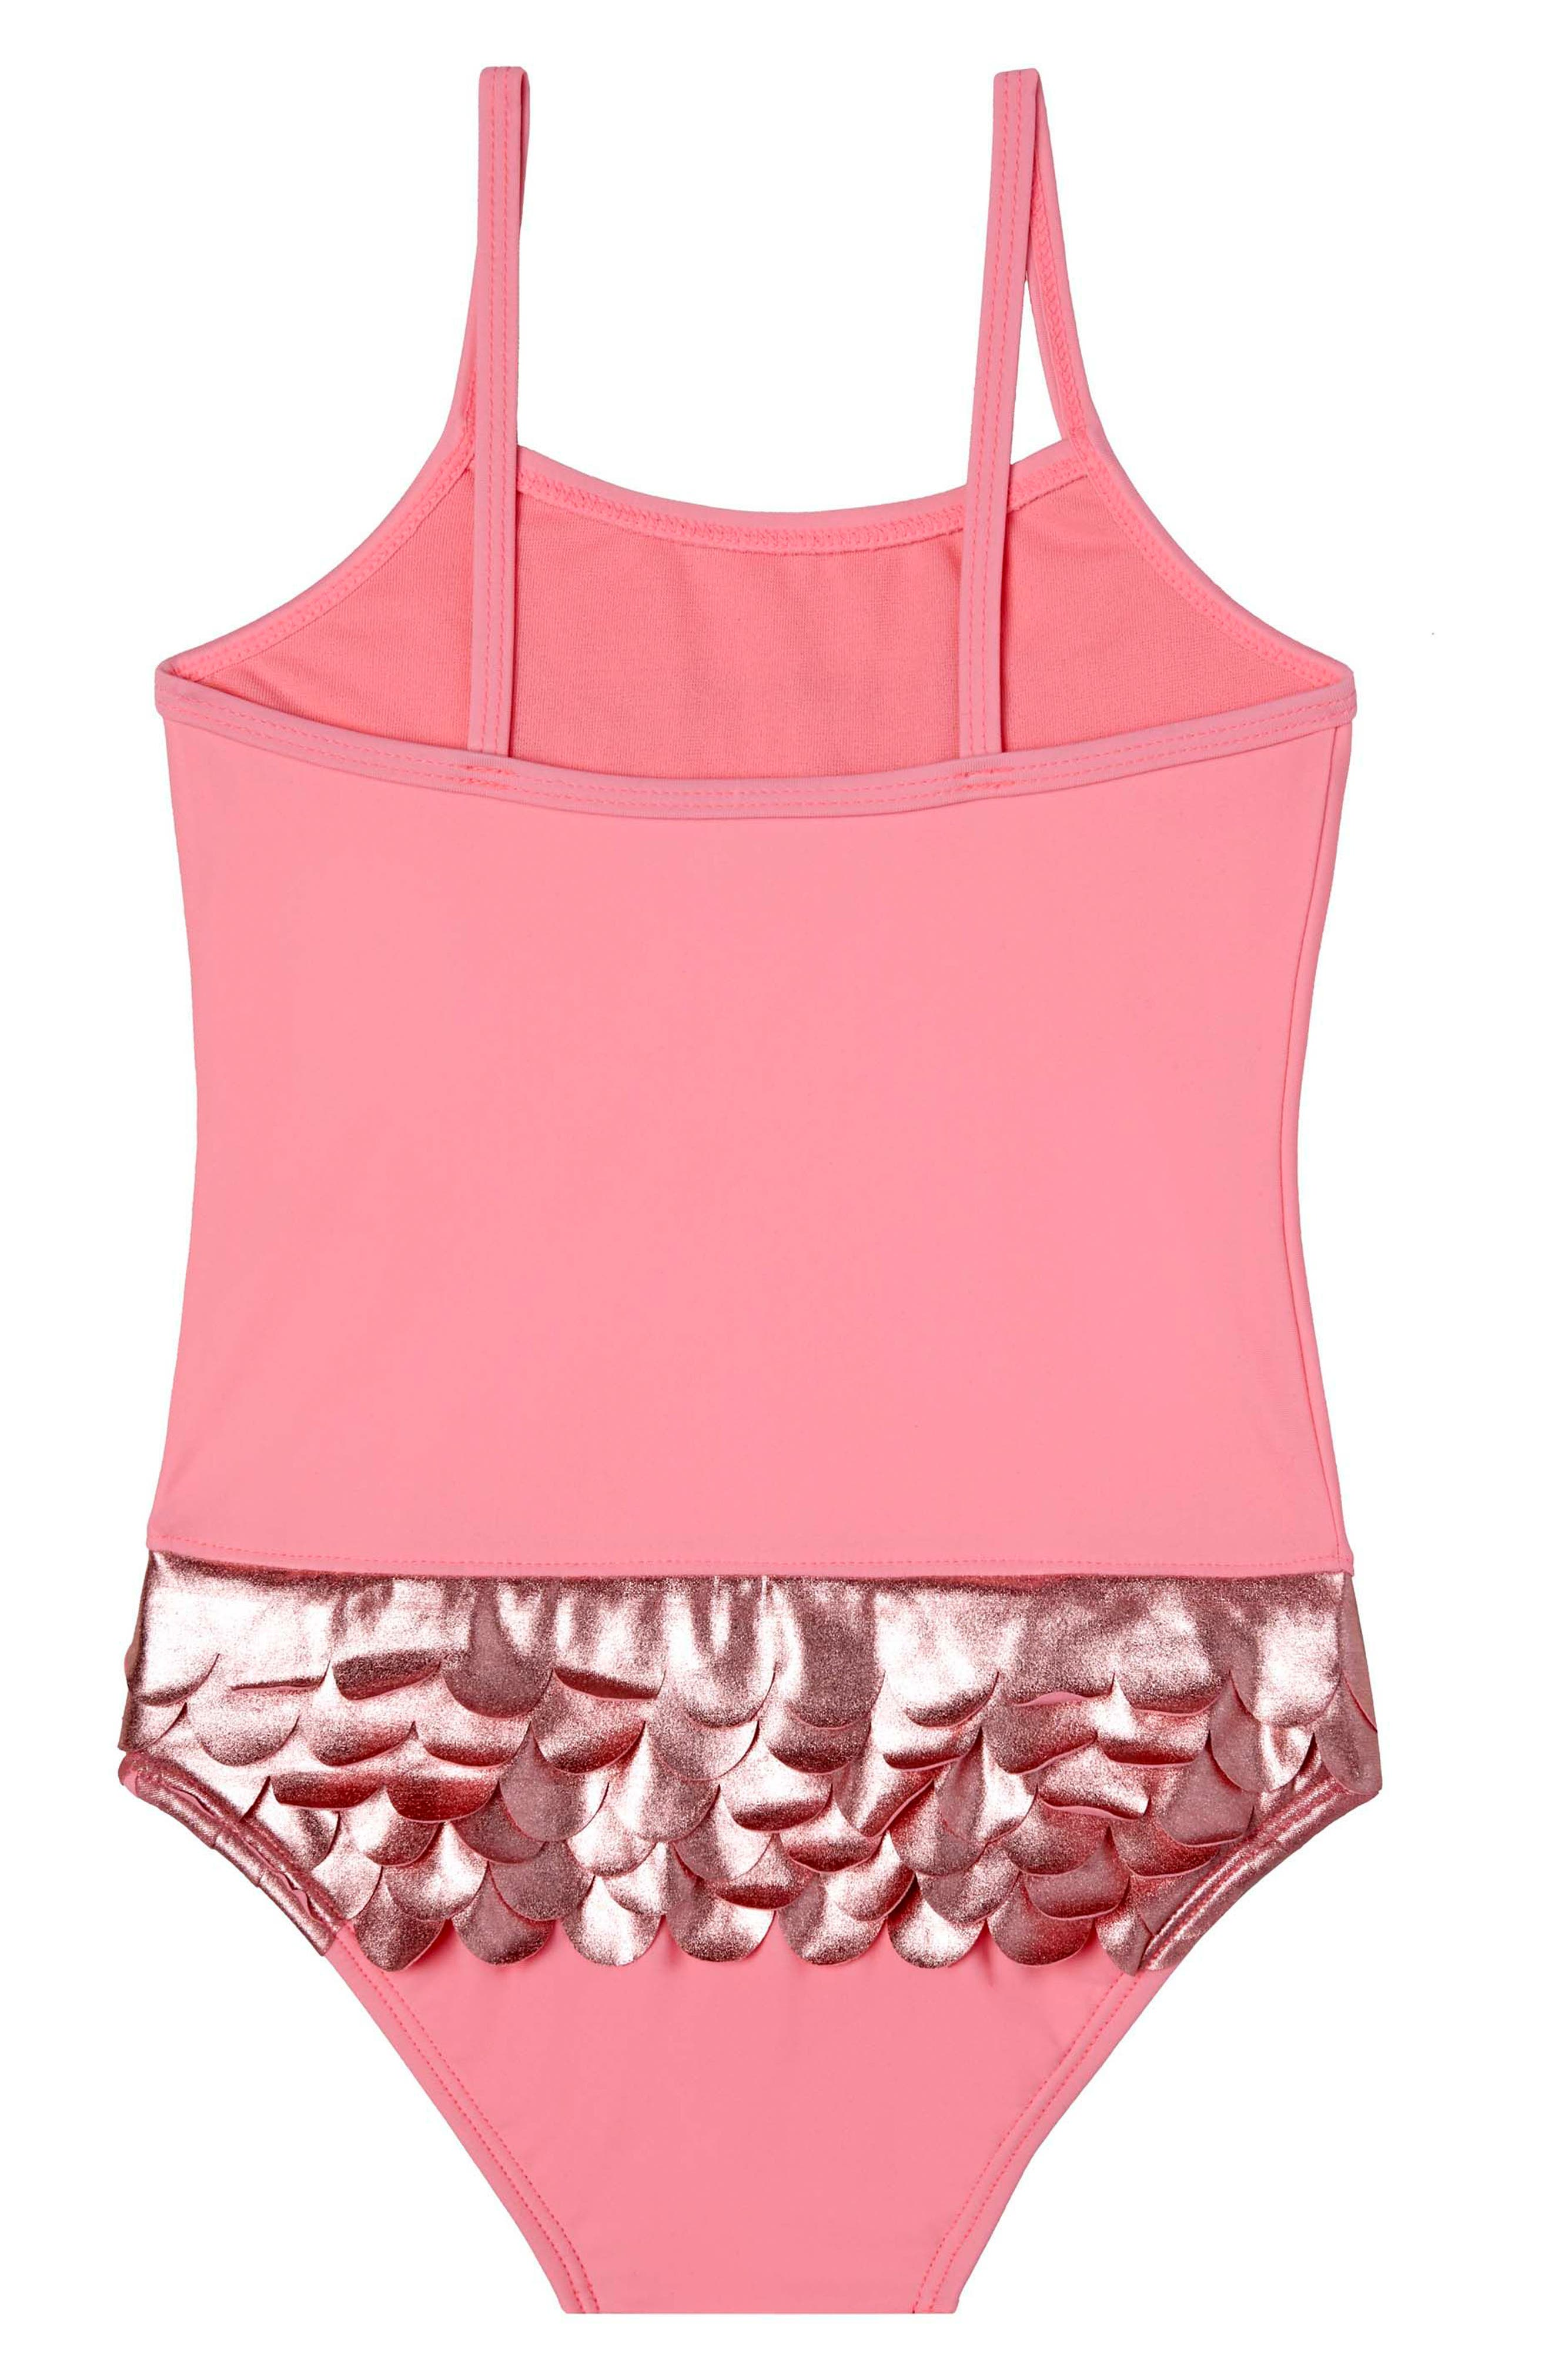 Mermaid Life One-Piece Swimsuit,                             Alternate thumbnail 2, color,                             Pink